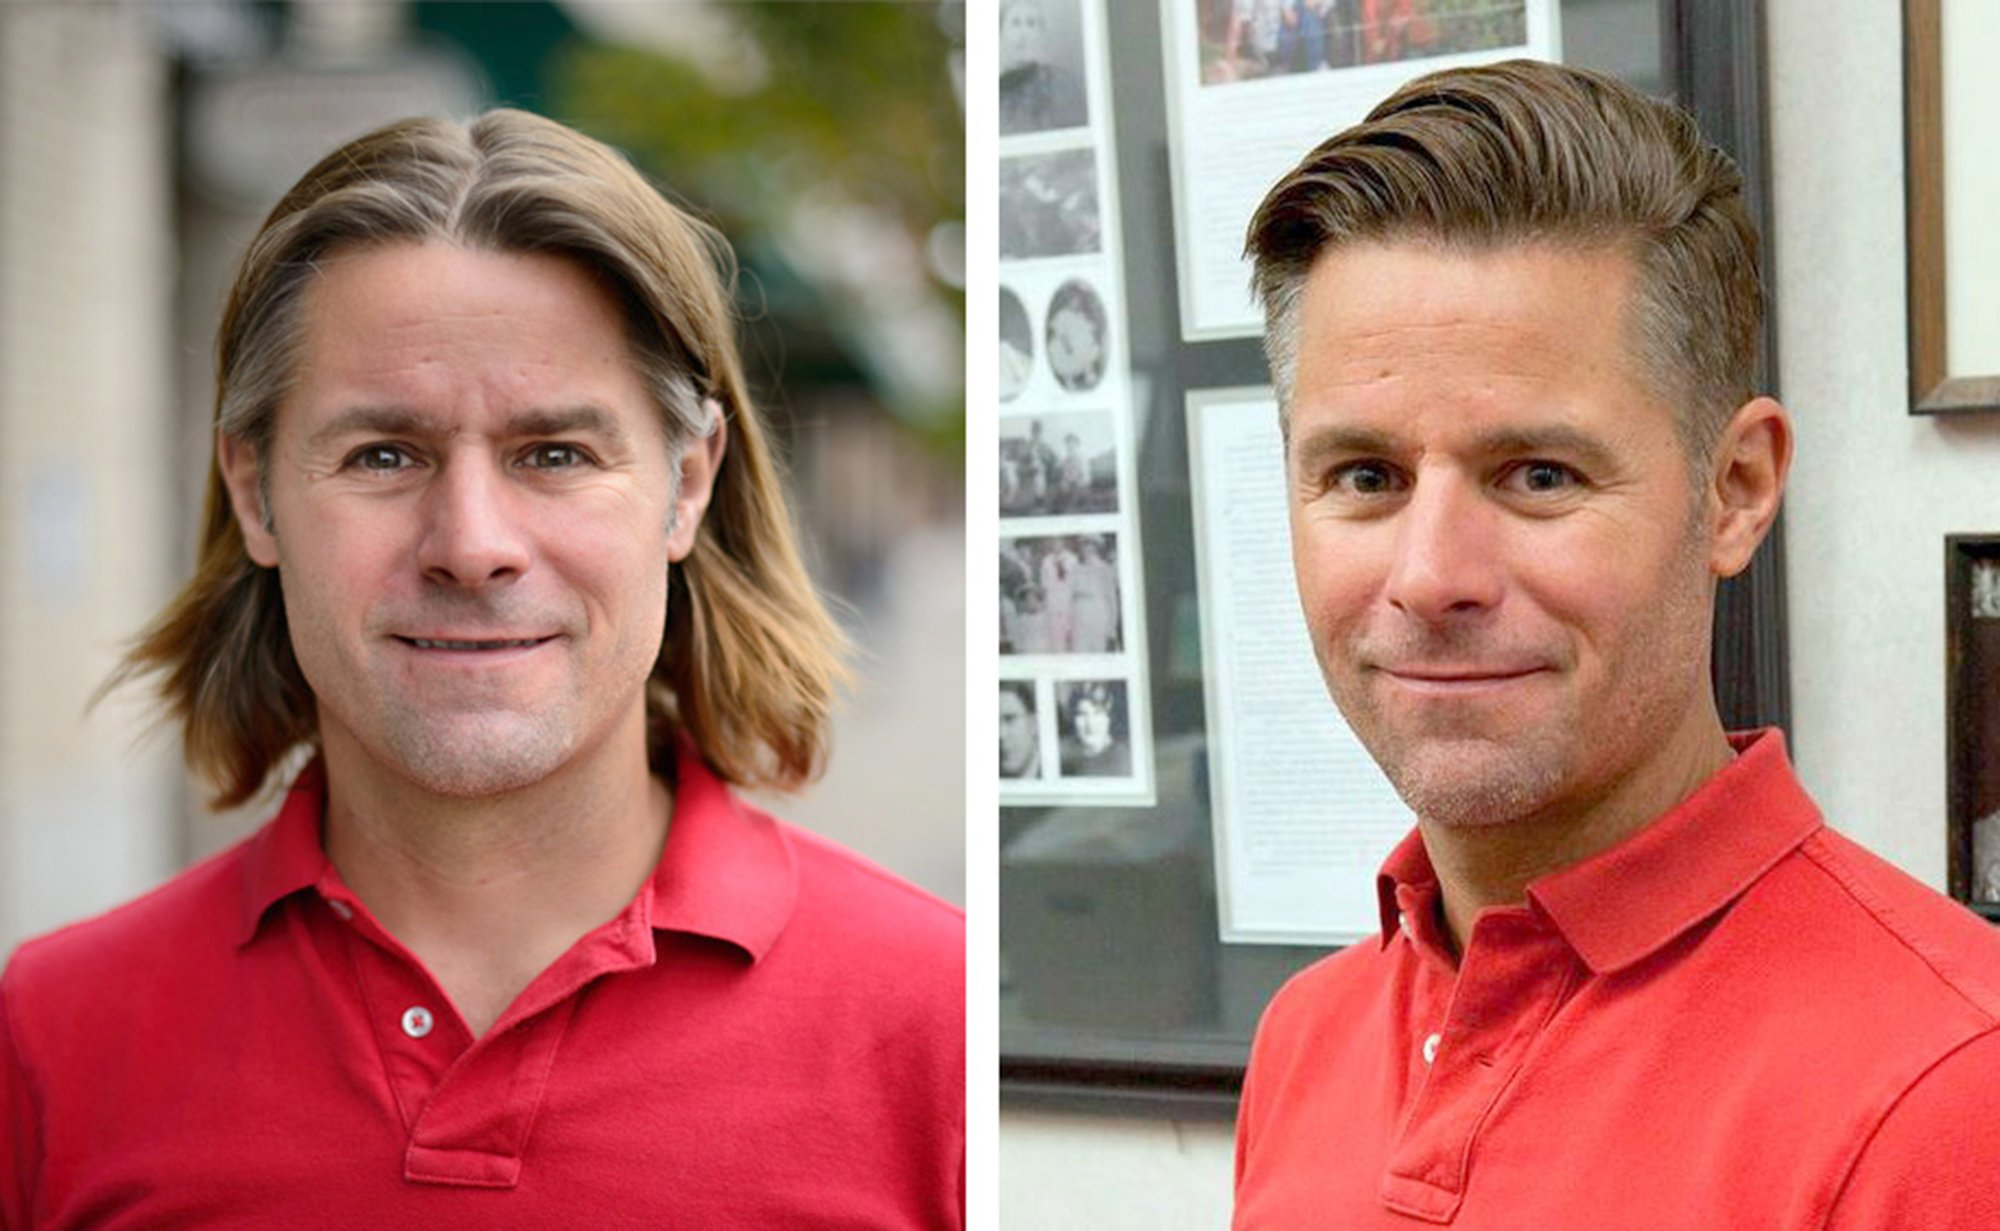 21 Before After Photos Of People With New Haircuts Inspiremore